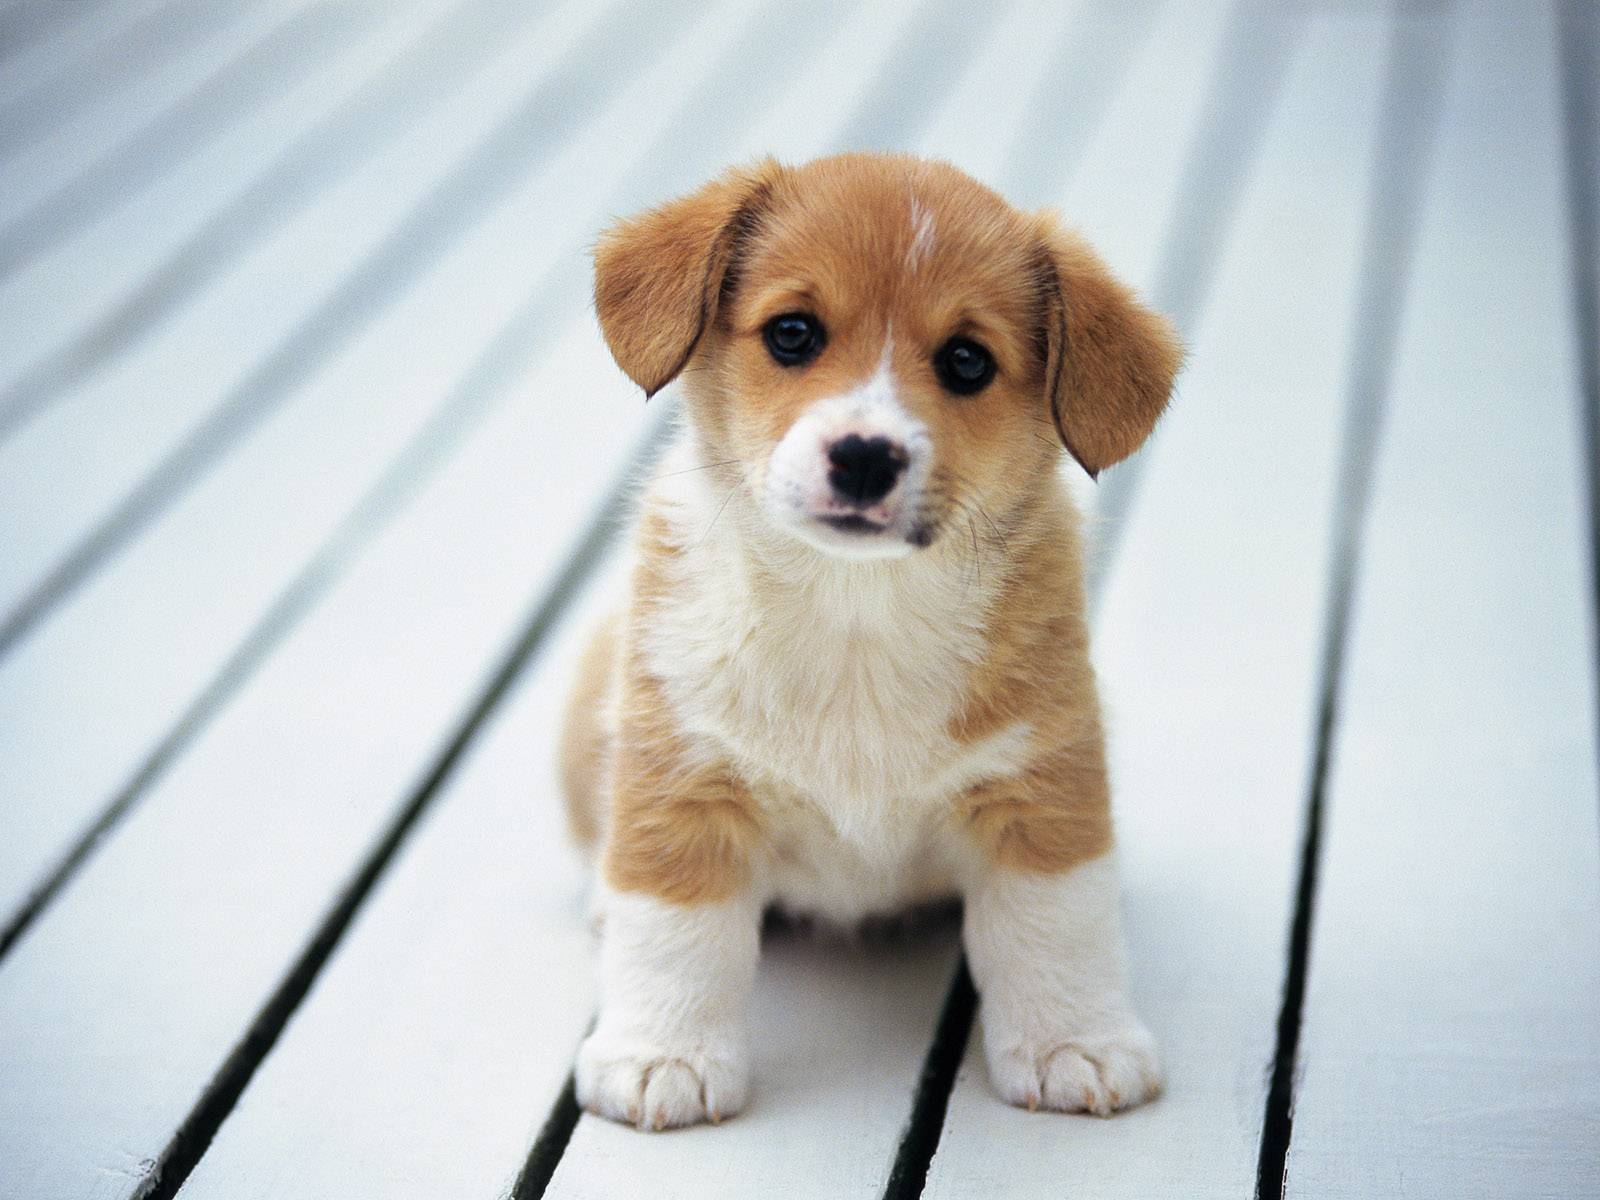 http://stuffpoint.com/dogs/image/338835-dogs-cute-dog.jpg